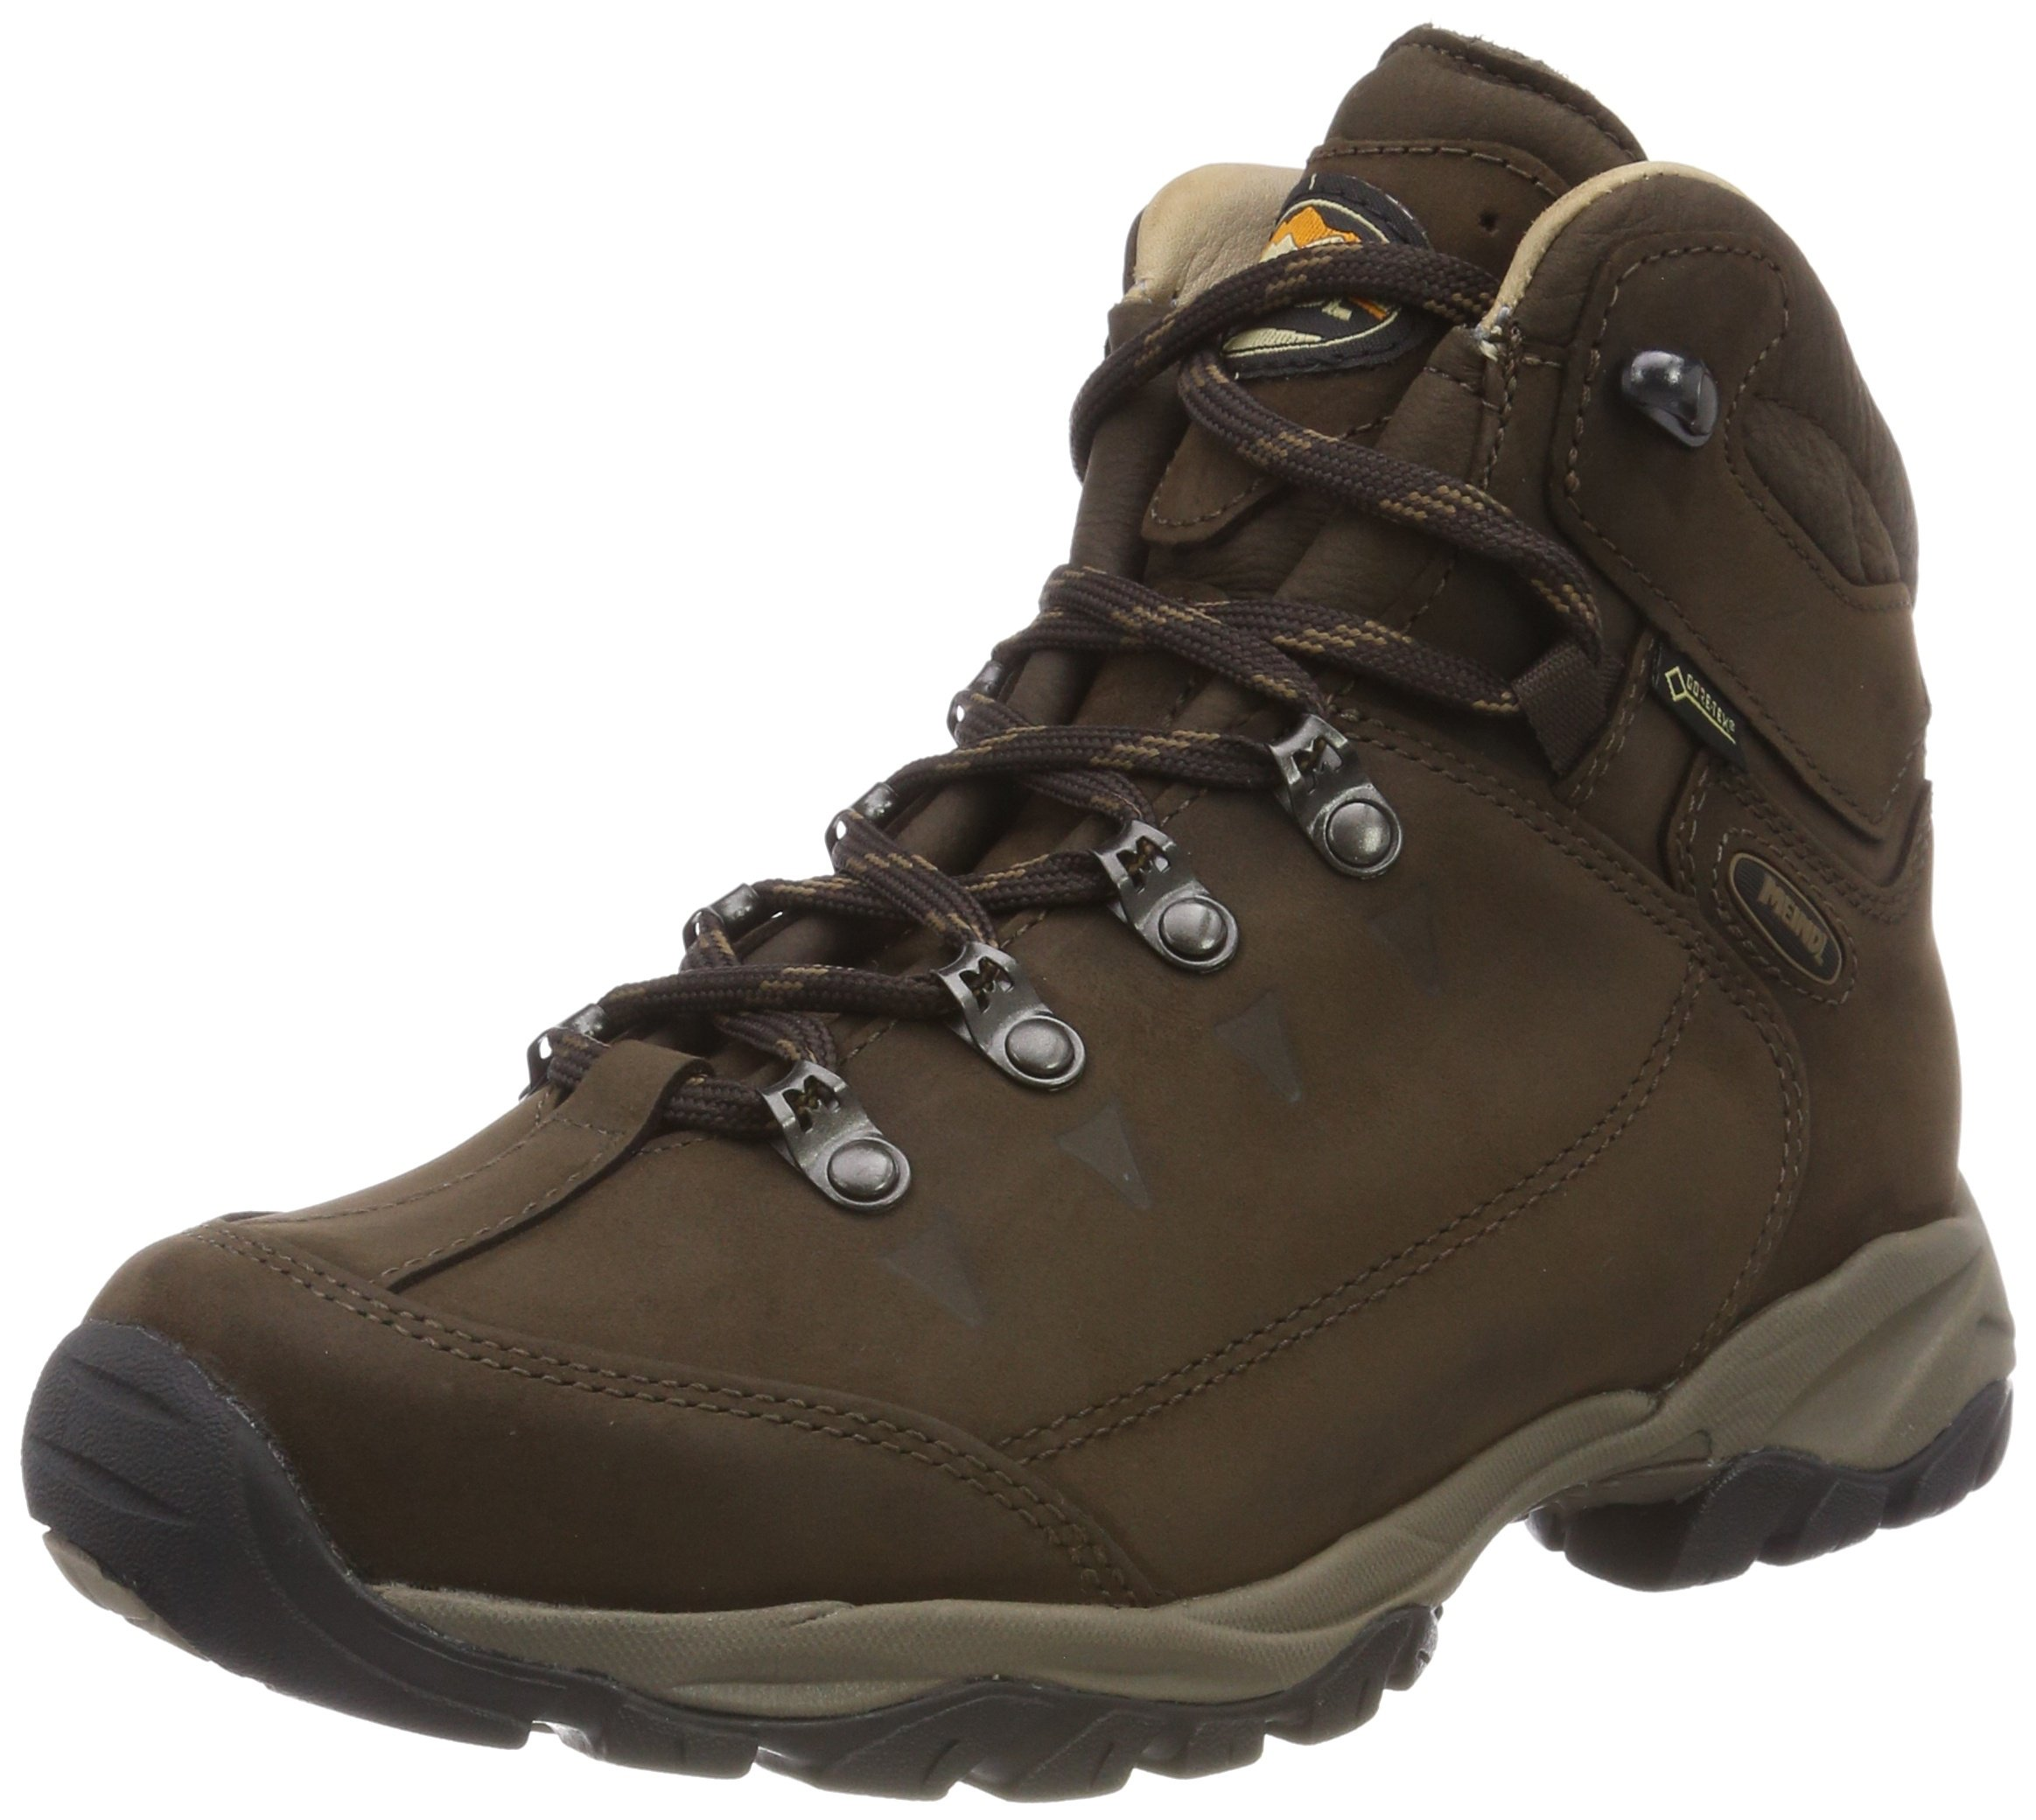 45931fe6ee4 Meindl Women's Ohio Lady 2 GTX High Rise Hiking Shoes